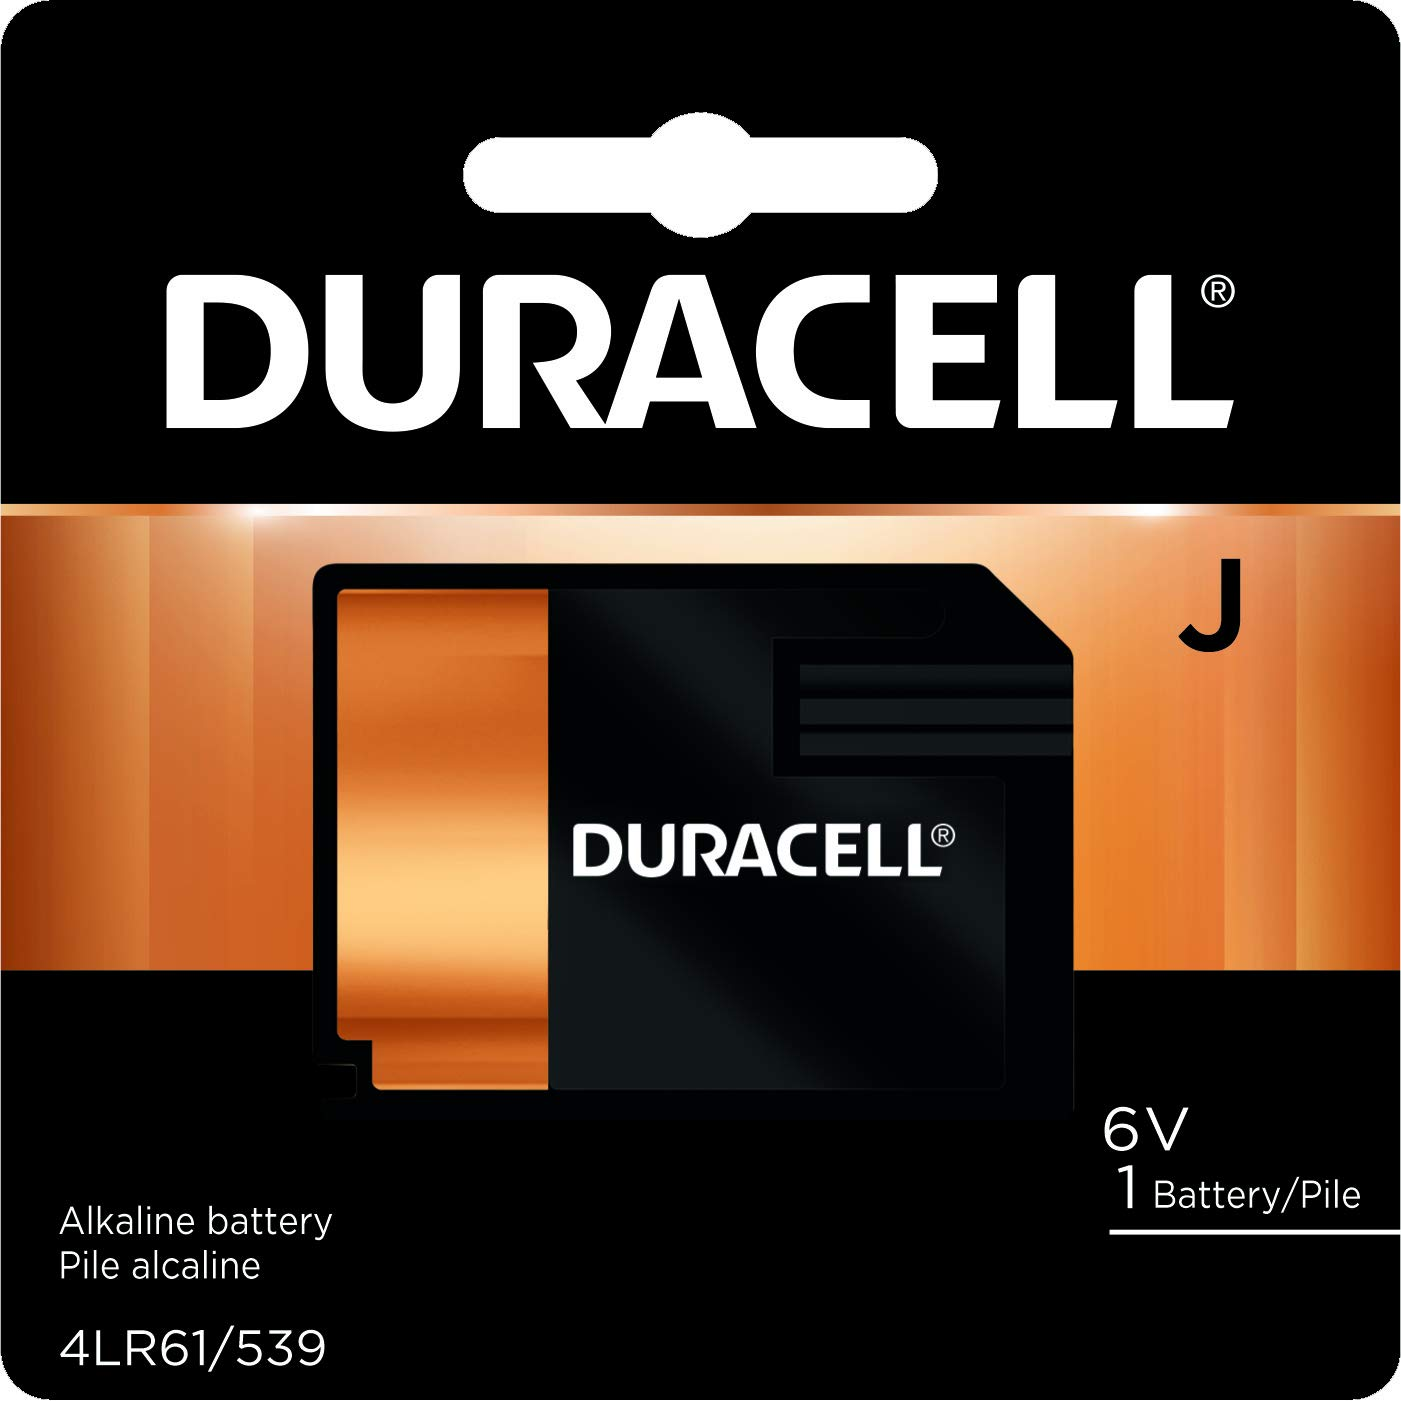 Duracell - J 6V Specialty Alkaline Battery - long-lasting battery - 1 Count